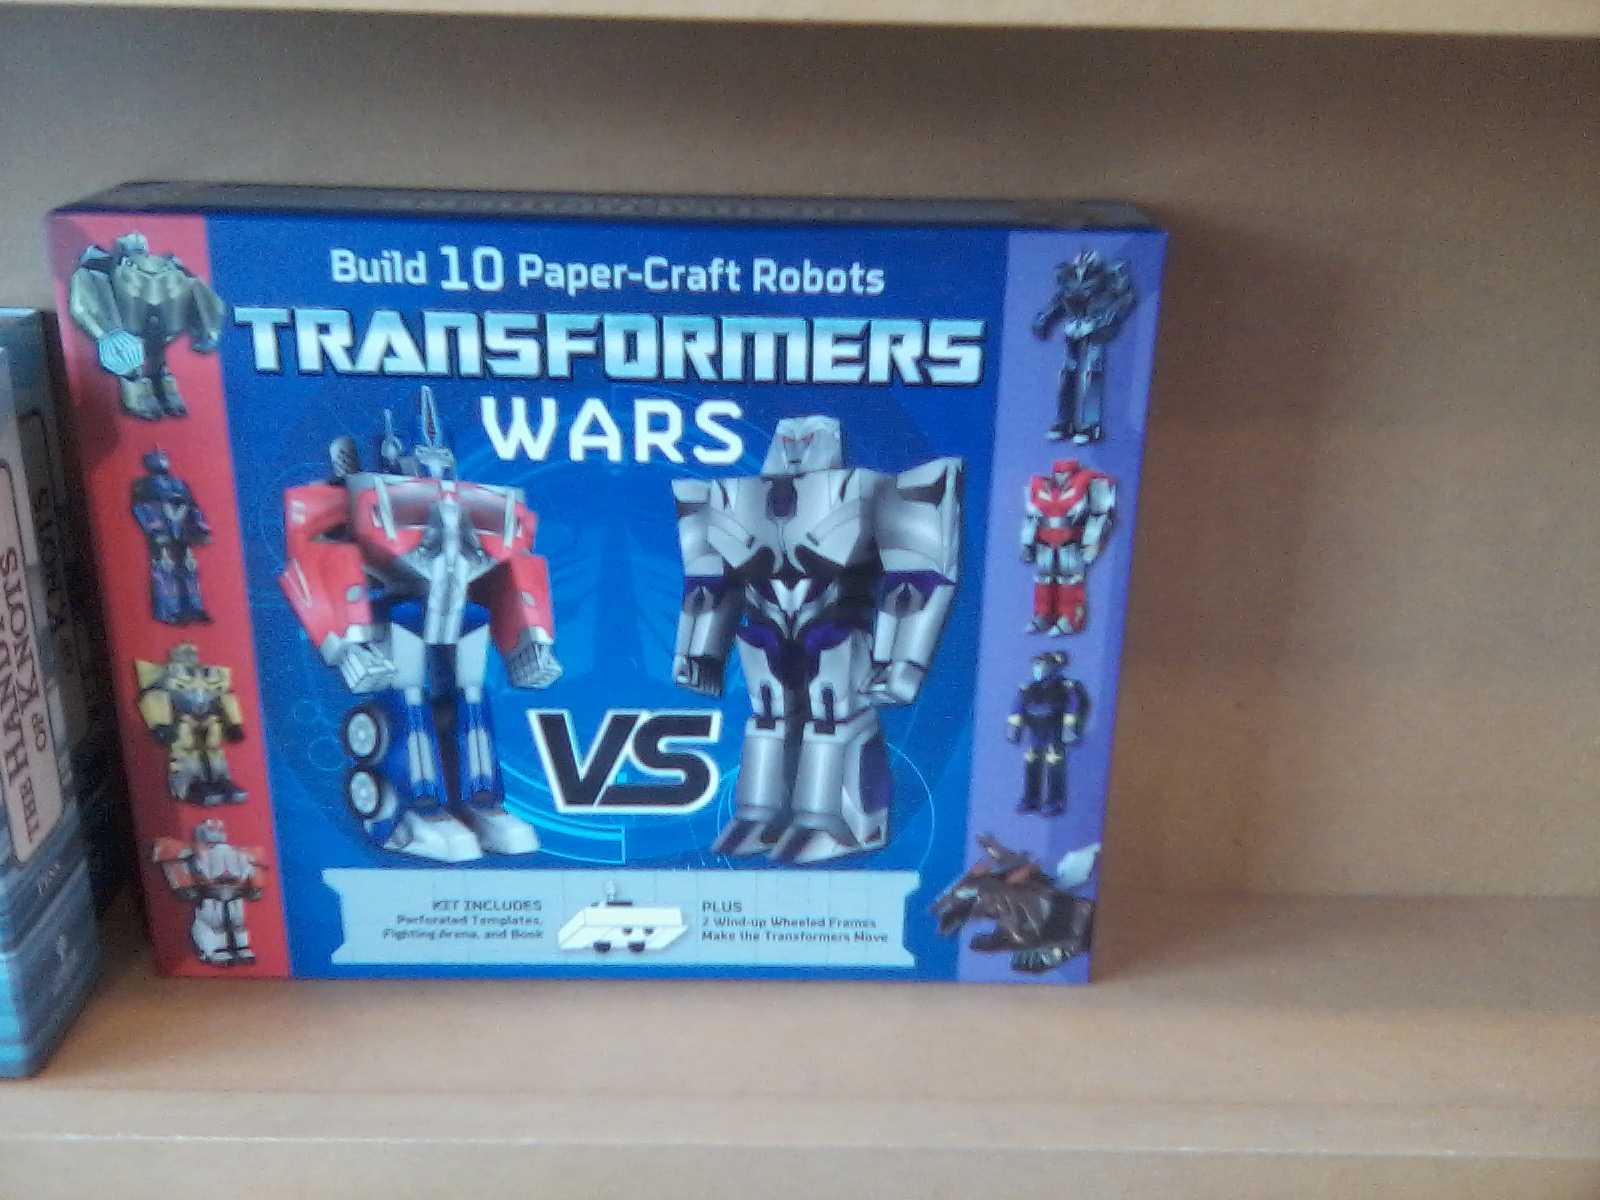 Transformers wars papercraft book found at retail transformers just jeuxipadfo Images